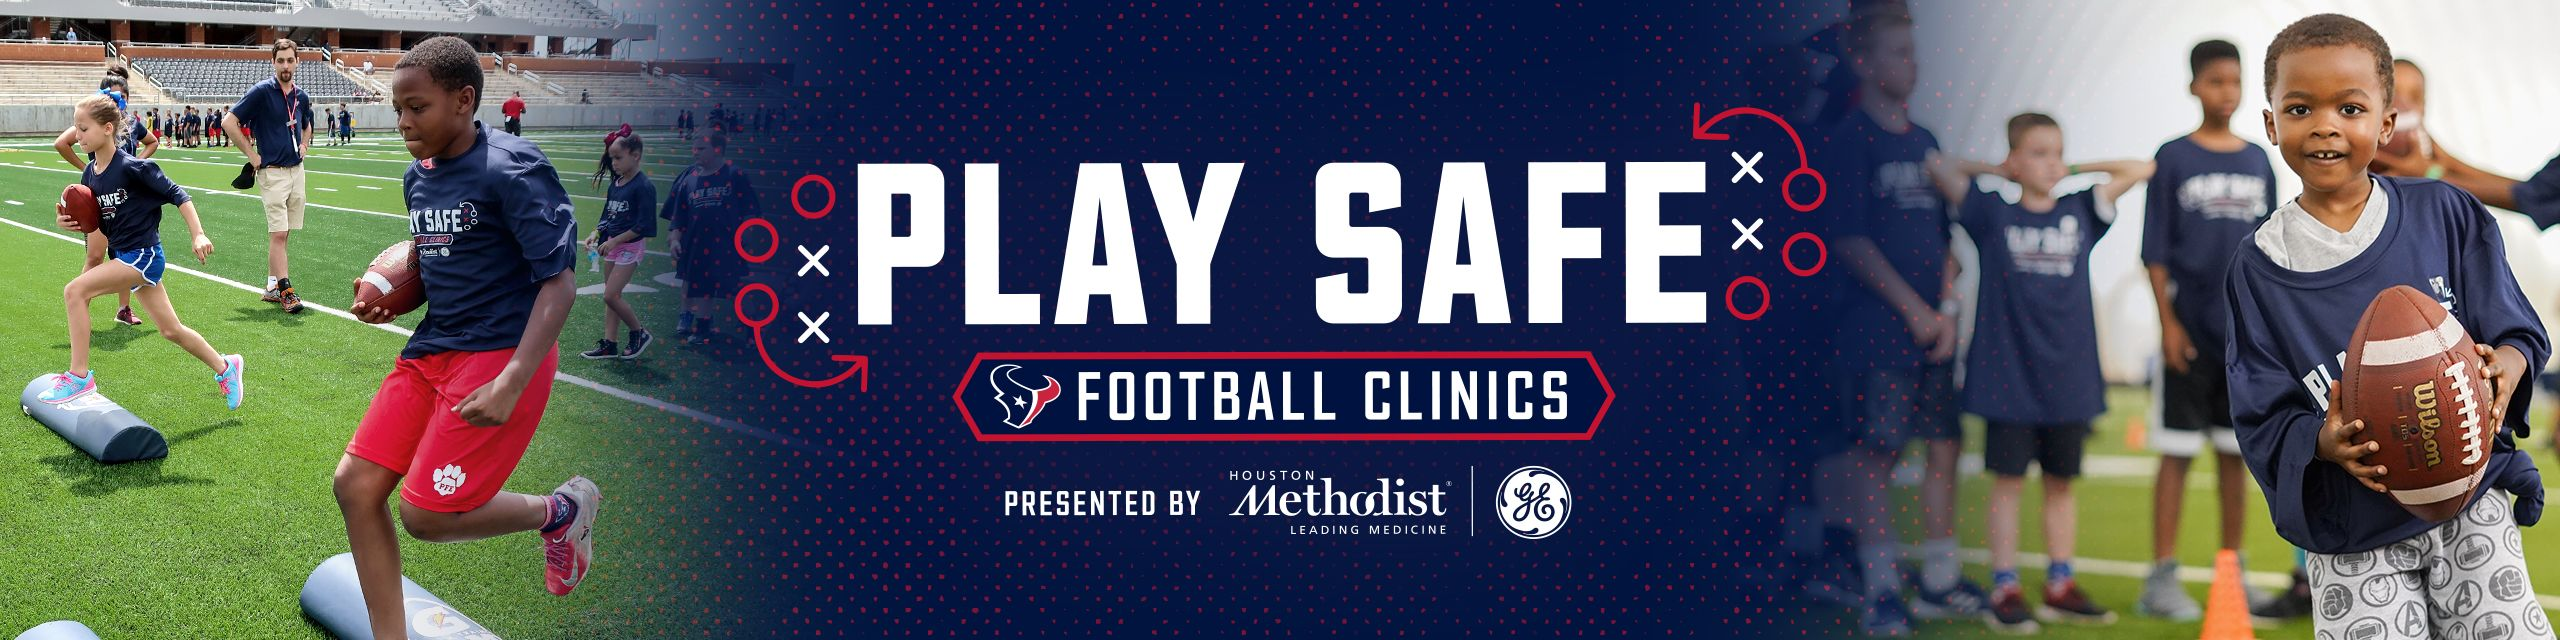 Play Safe - Football Clinics presented by Houston Methodist and GE